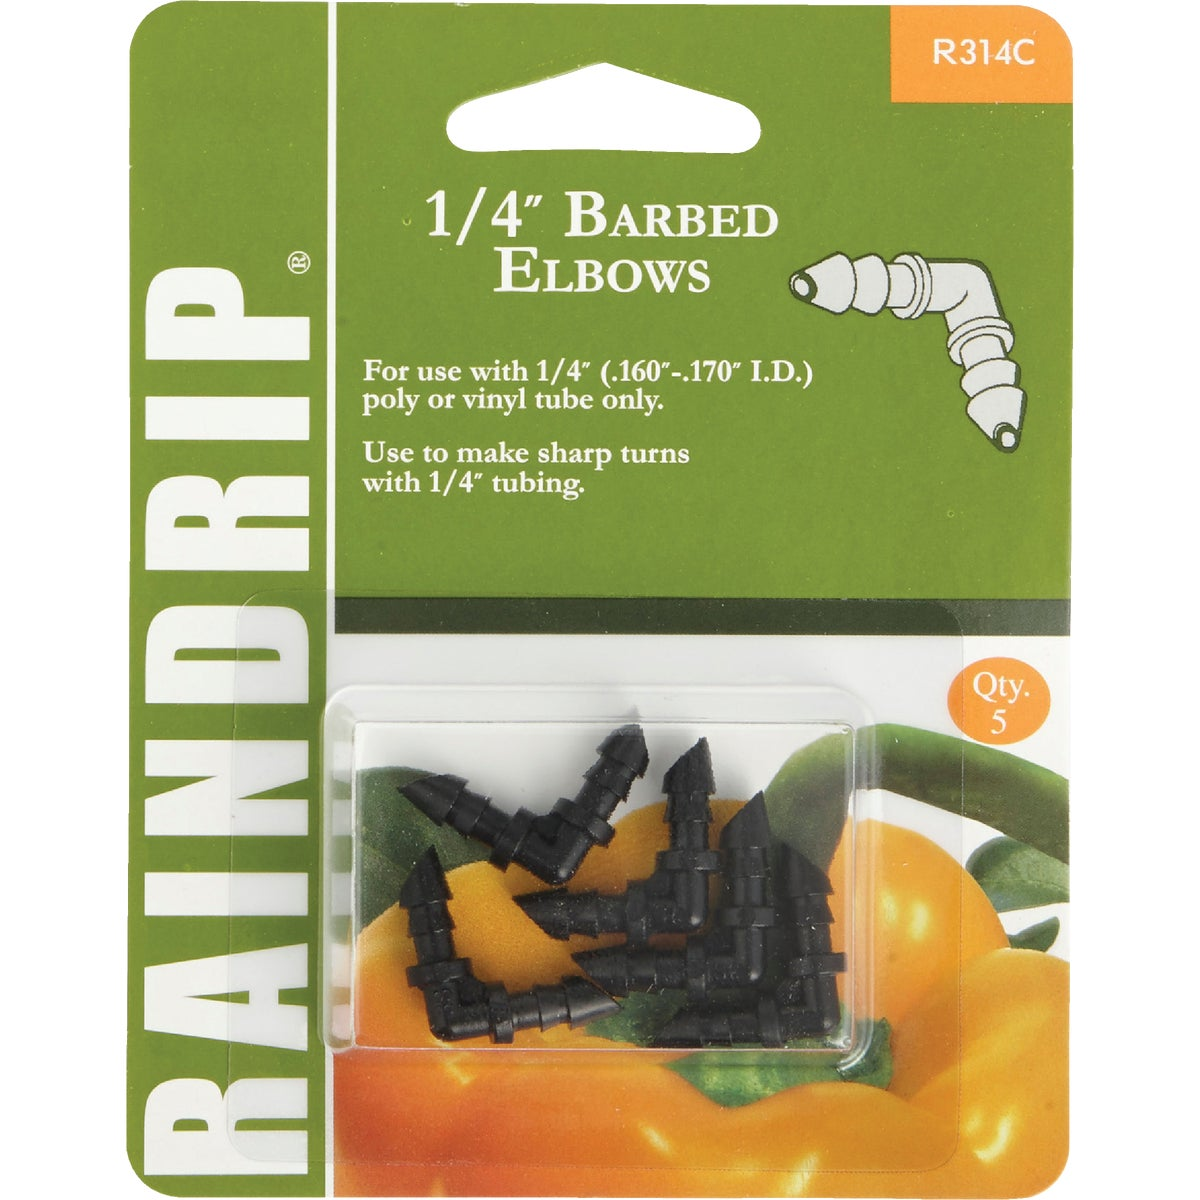 "1/4"" DOUBLE BARBED ELBOW - R314CT by Raindrip Inc"